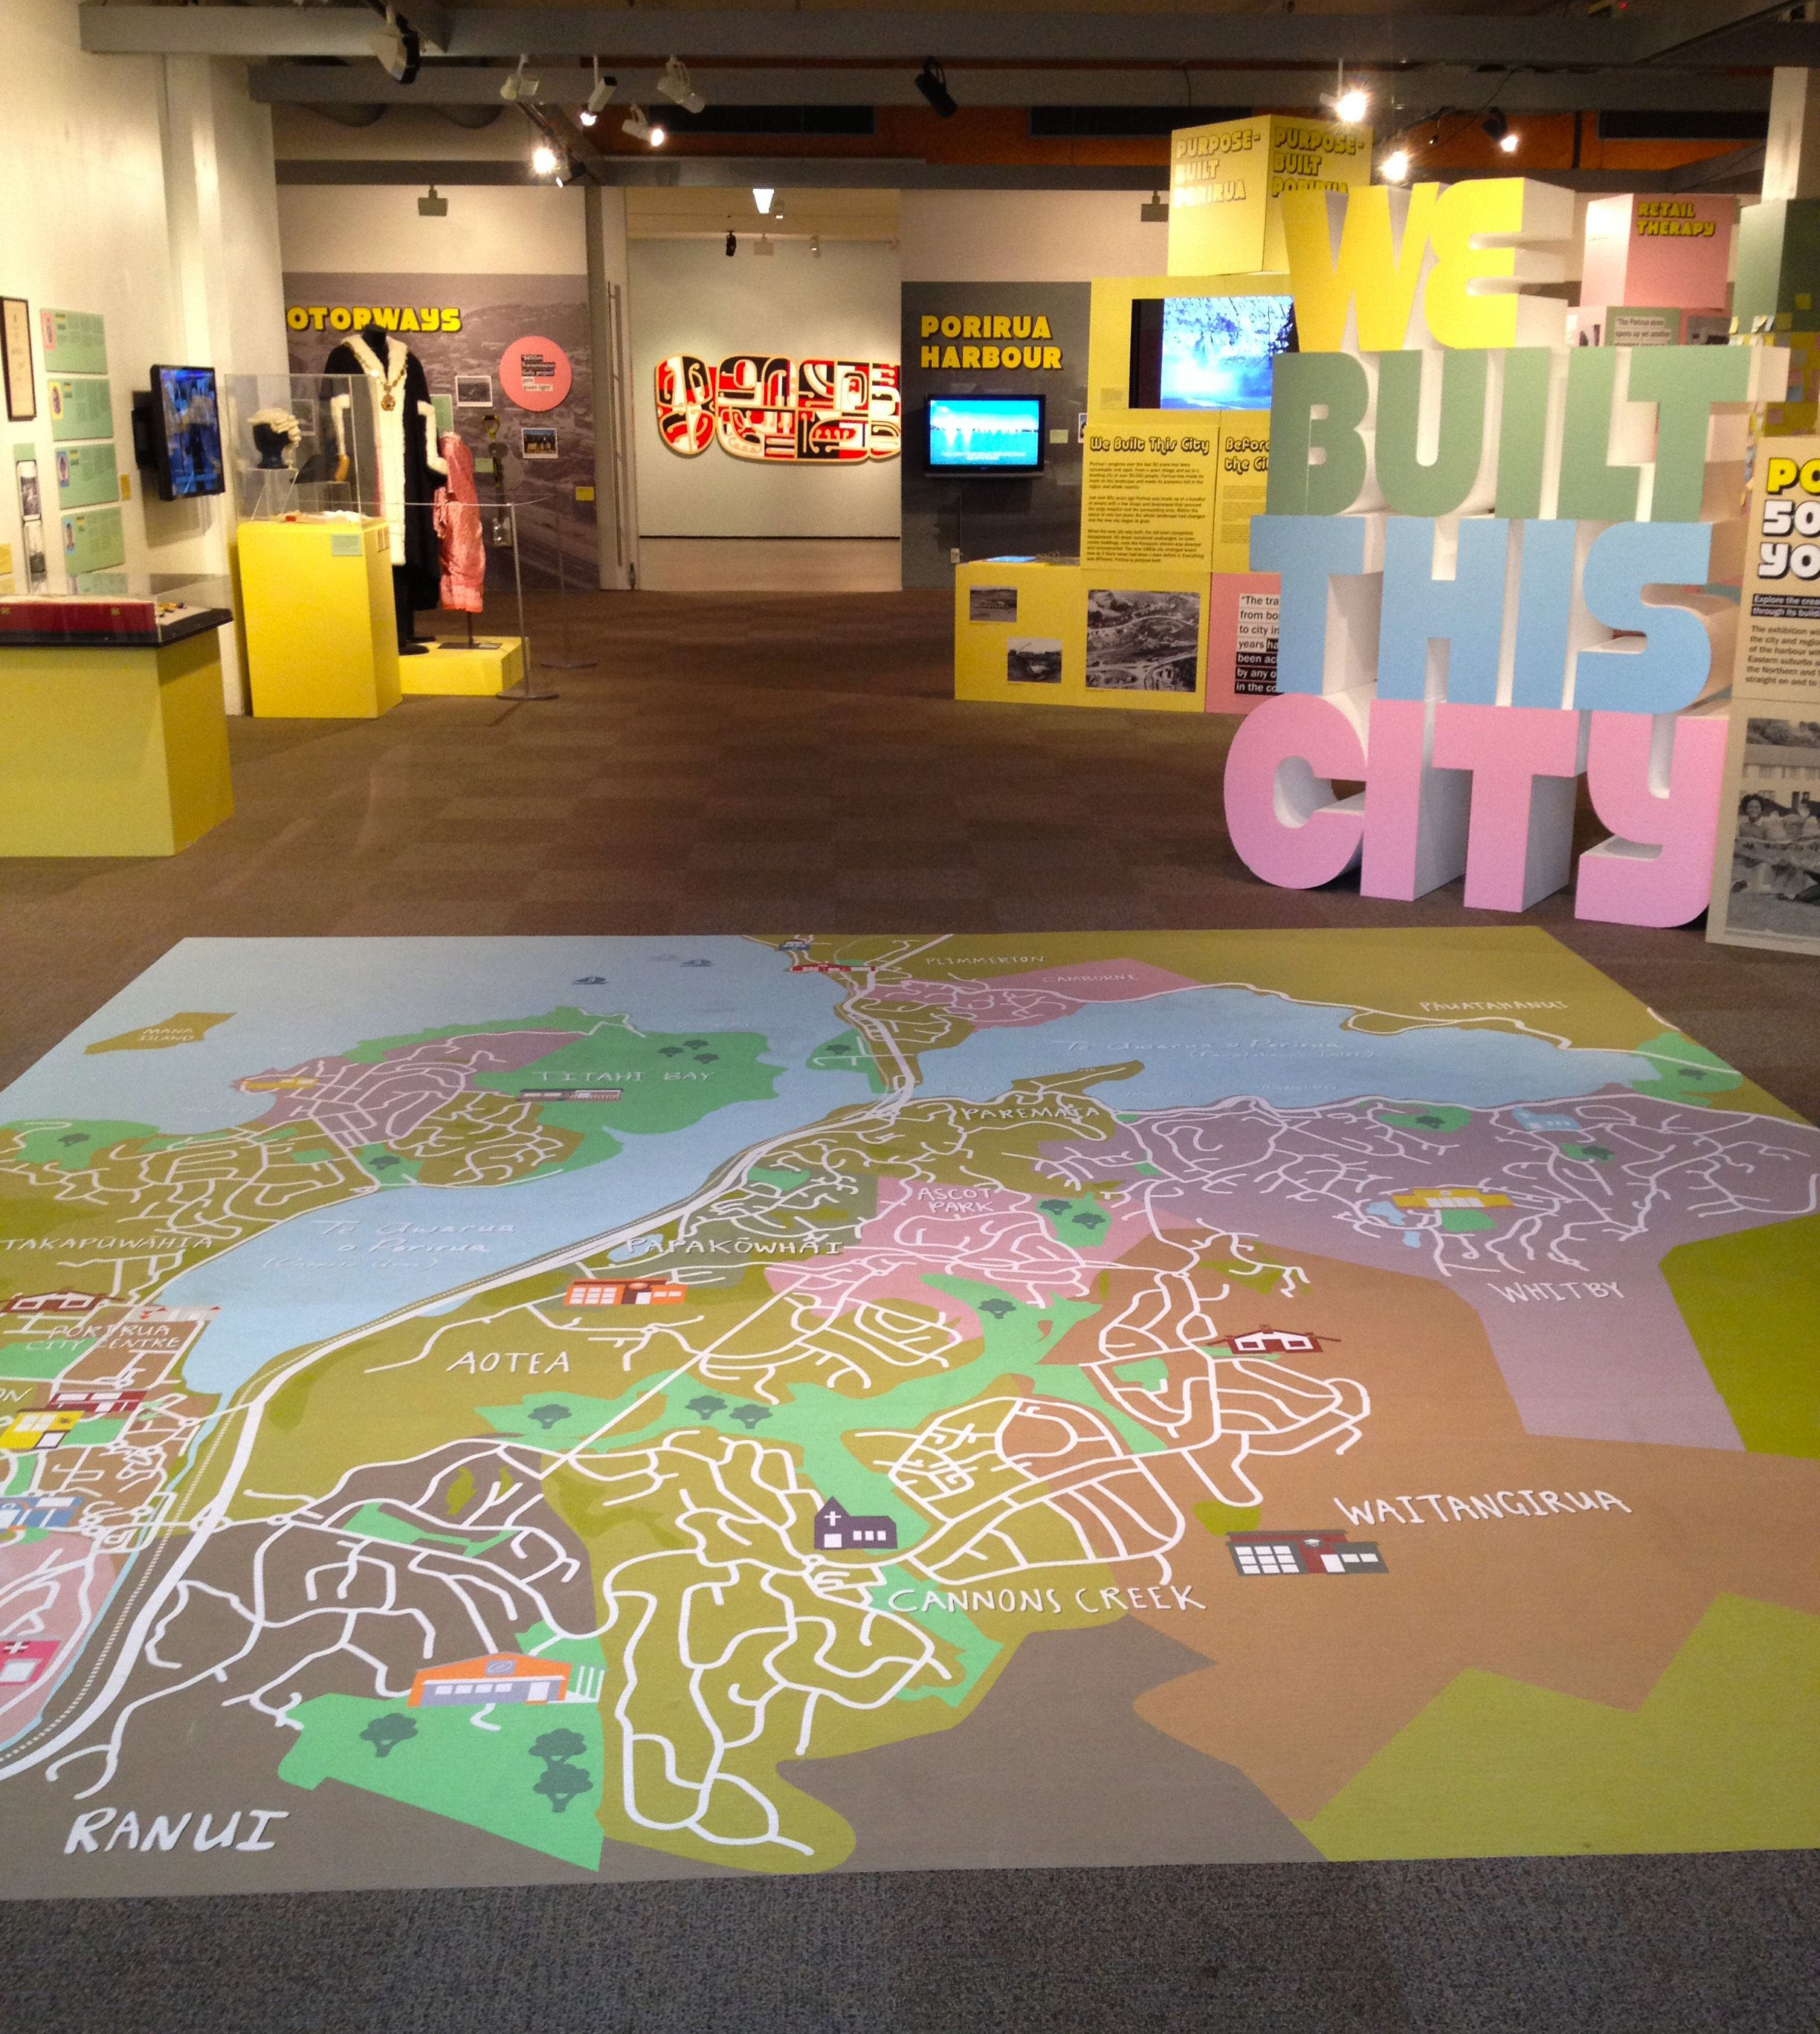 Exhibition Stands Nz : We built this city exhibition at pataka art museum in